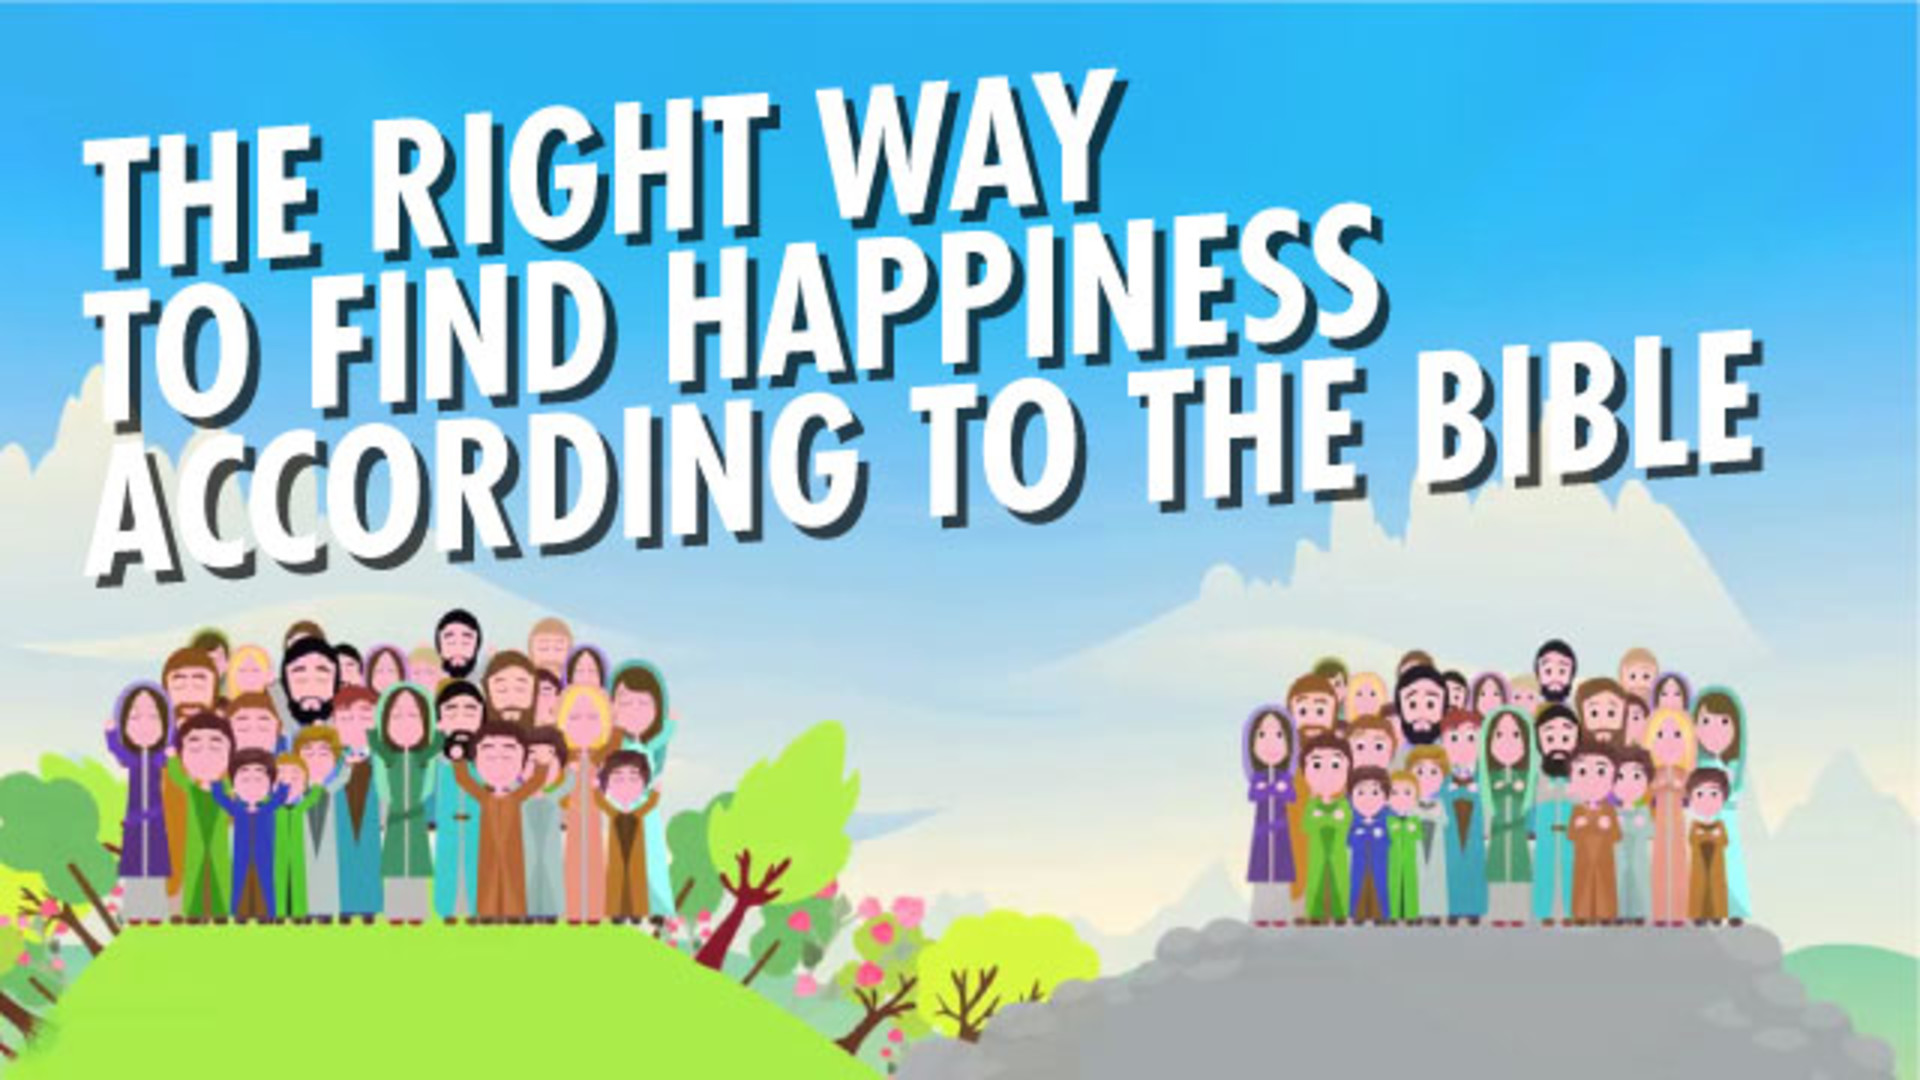 Finding true happiness in Bible